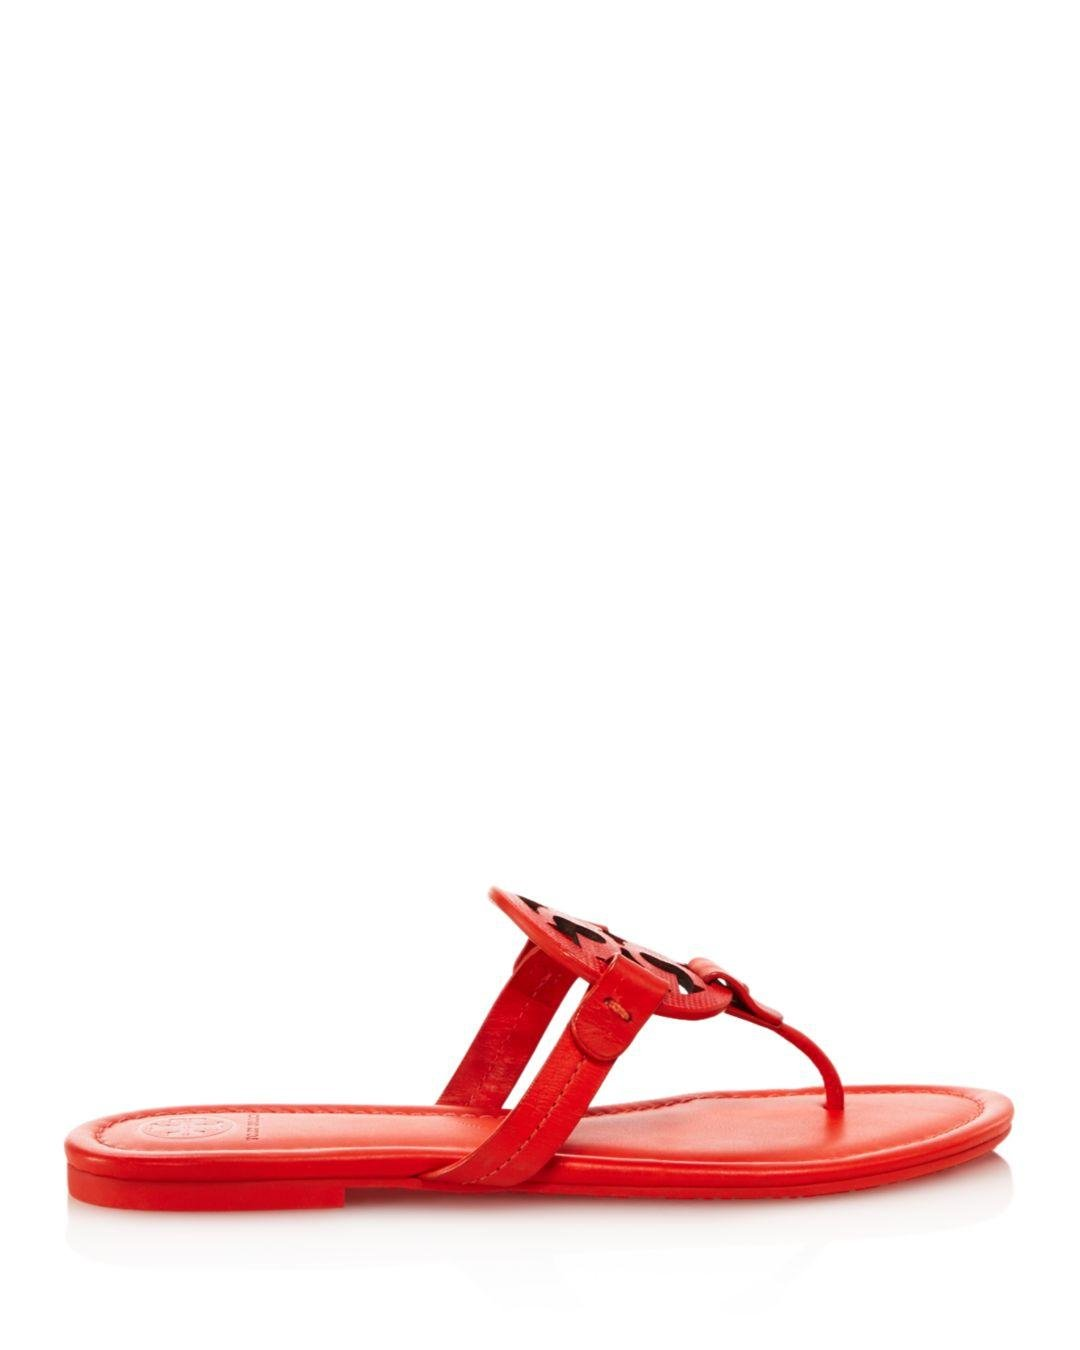 fa659e3947095 Lyst - Tory Burch Women s Miller Thong Sandals in Red